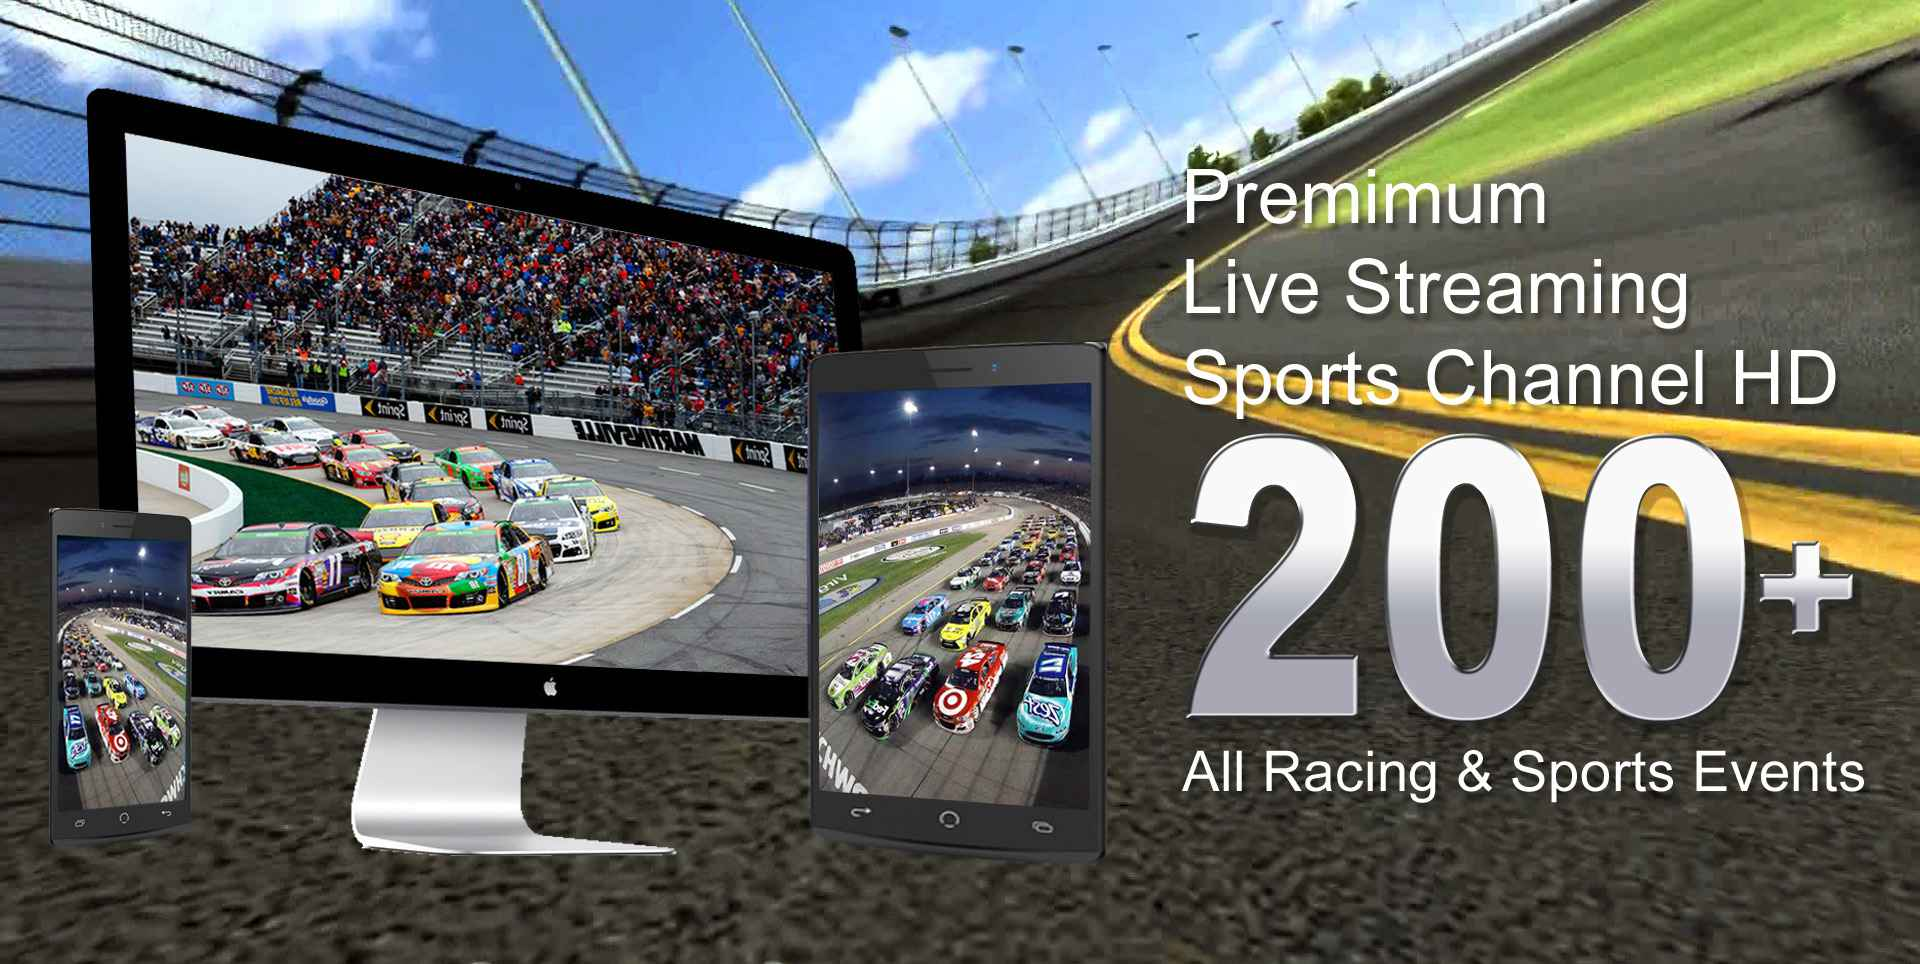 NASCAR Pennsylvania 400 at Pocono